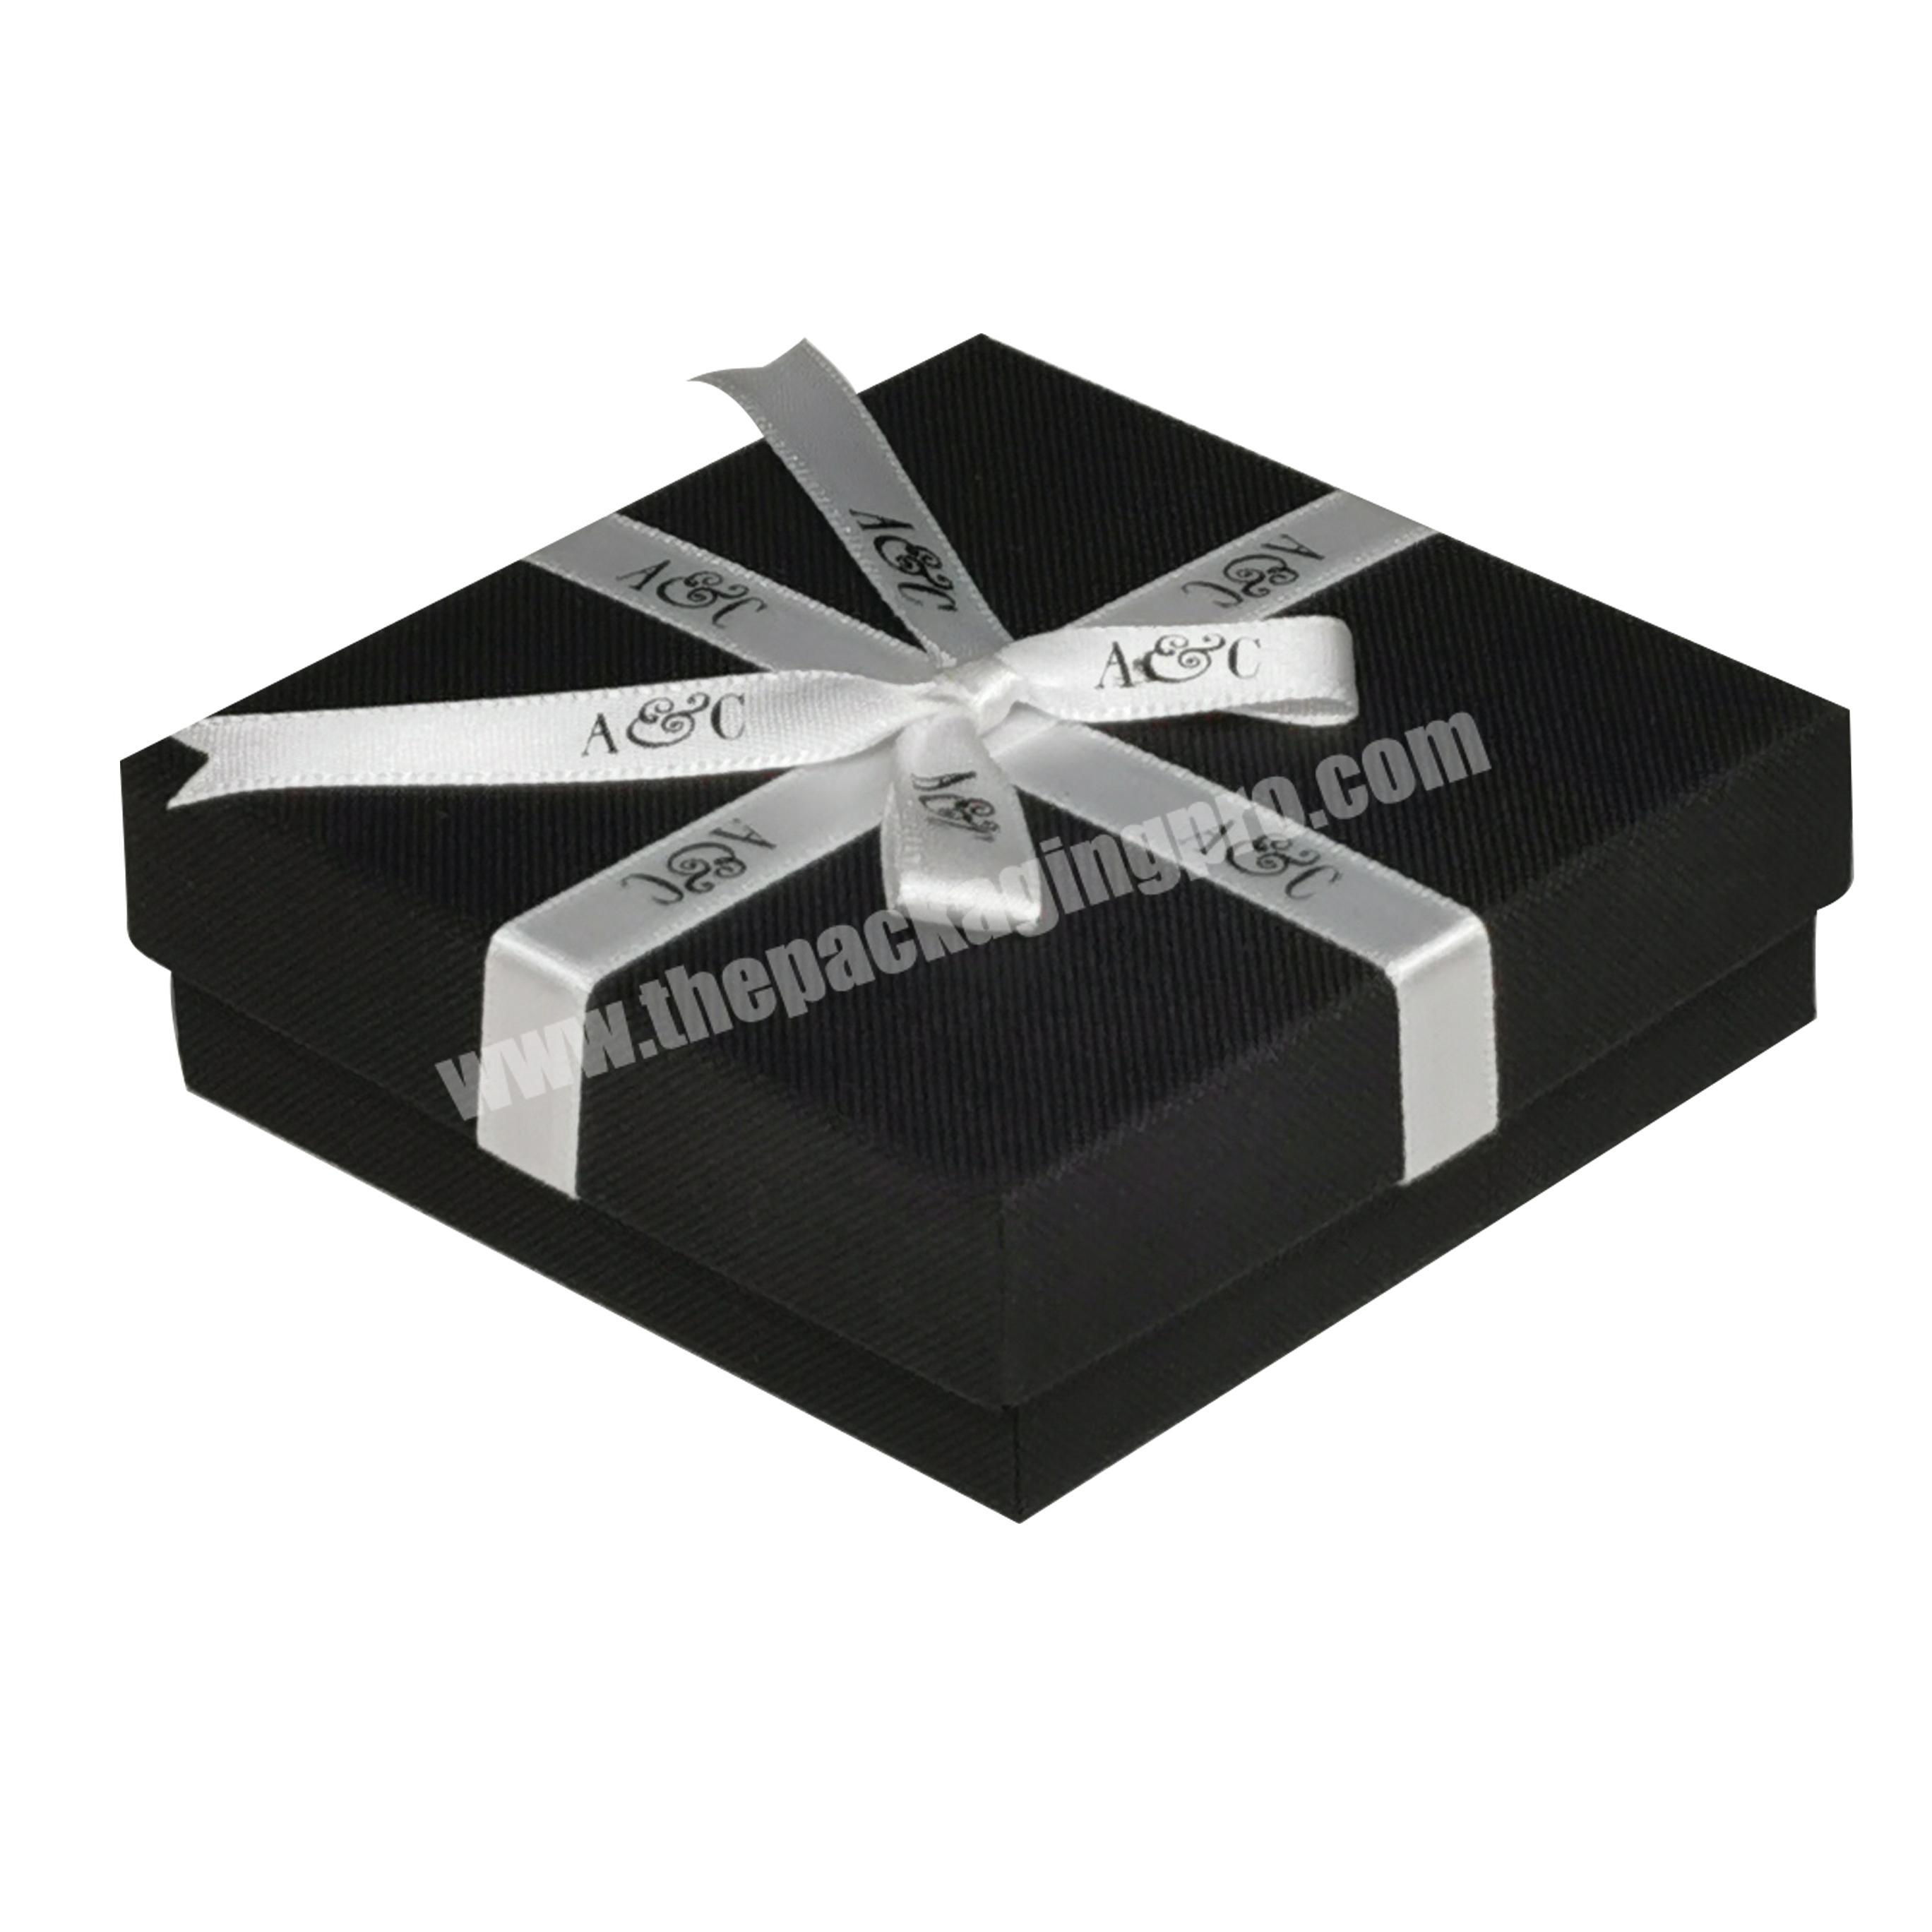 High Quality Low Price Luxury Custom Black Lid Gift Box and Base Packaging Box with Riband